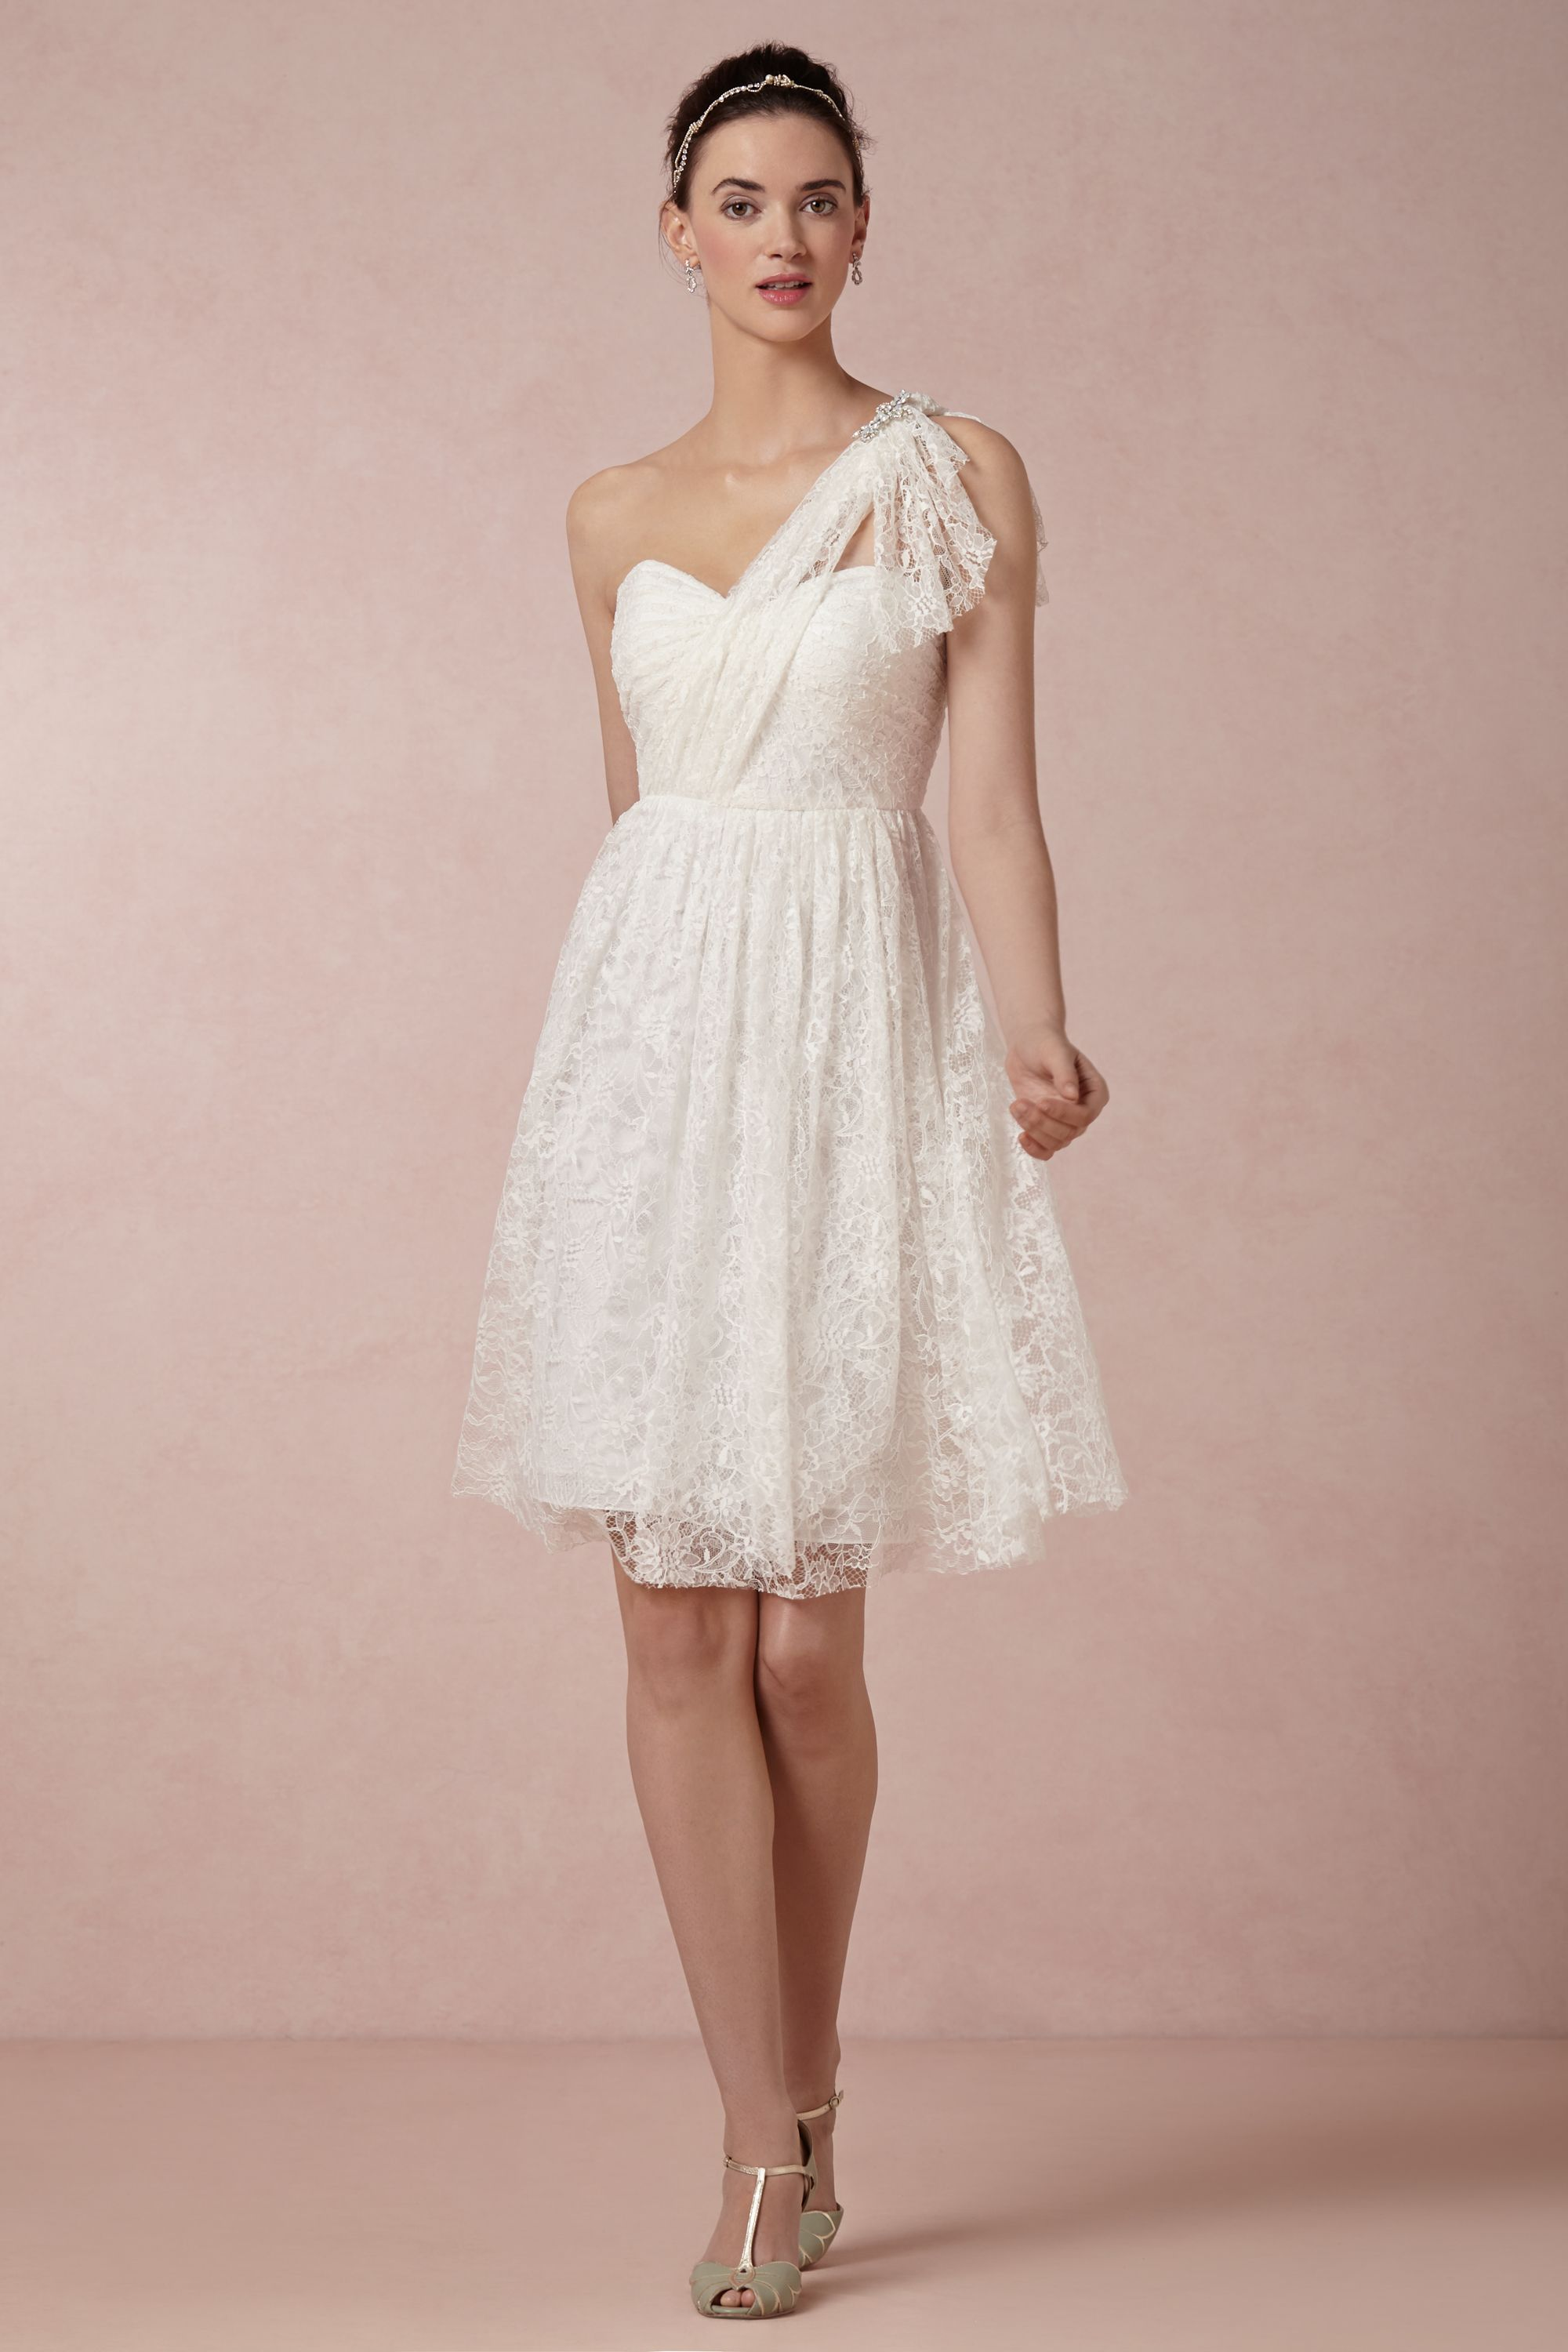 BHLDN\'s Delphine Manivet Prospere Gown in Ivory | N + T Bridal Party ...